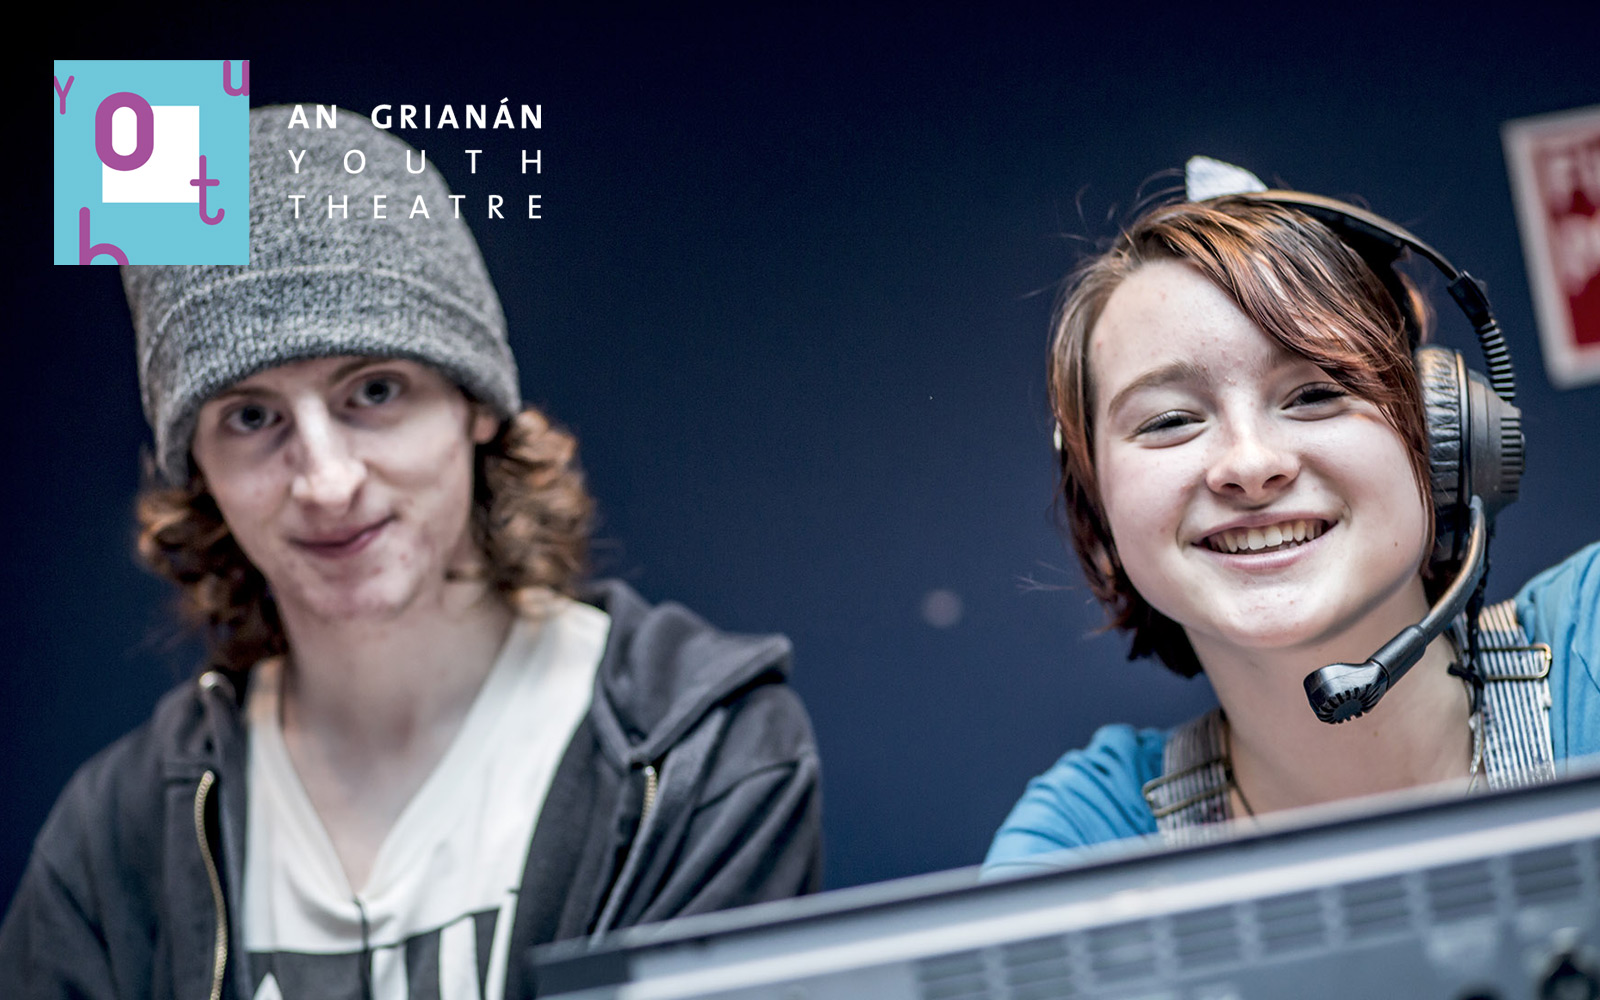 An Grianan Youth Theatre's Lee Russell, sound and Angel Humm, lights, for The Delphi Dilemma, The Catcher in the Rye and Blackadder Goes Forth in 2017.